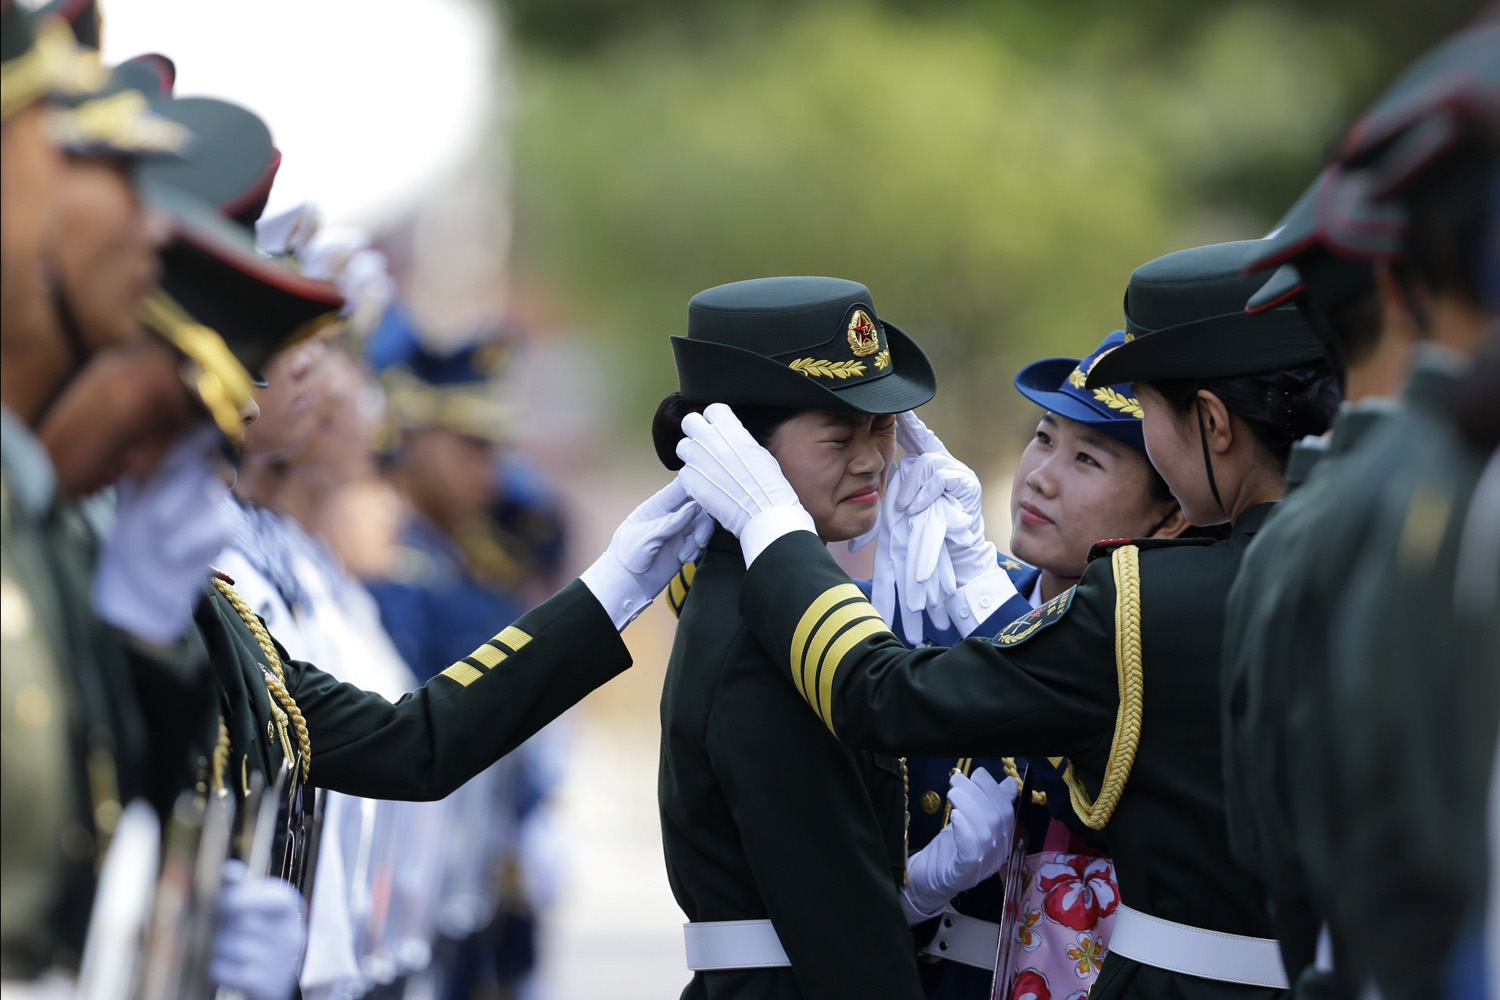 Jun. 11, 2014. A female member of the honor guard reacts as another one helps to adjust her cap ahead of an official welcoming ceremony for Italy's Prime Minister Matteo Renzi outside the Great Hall of the People in Beijing.